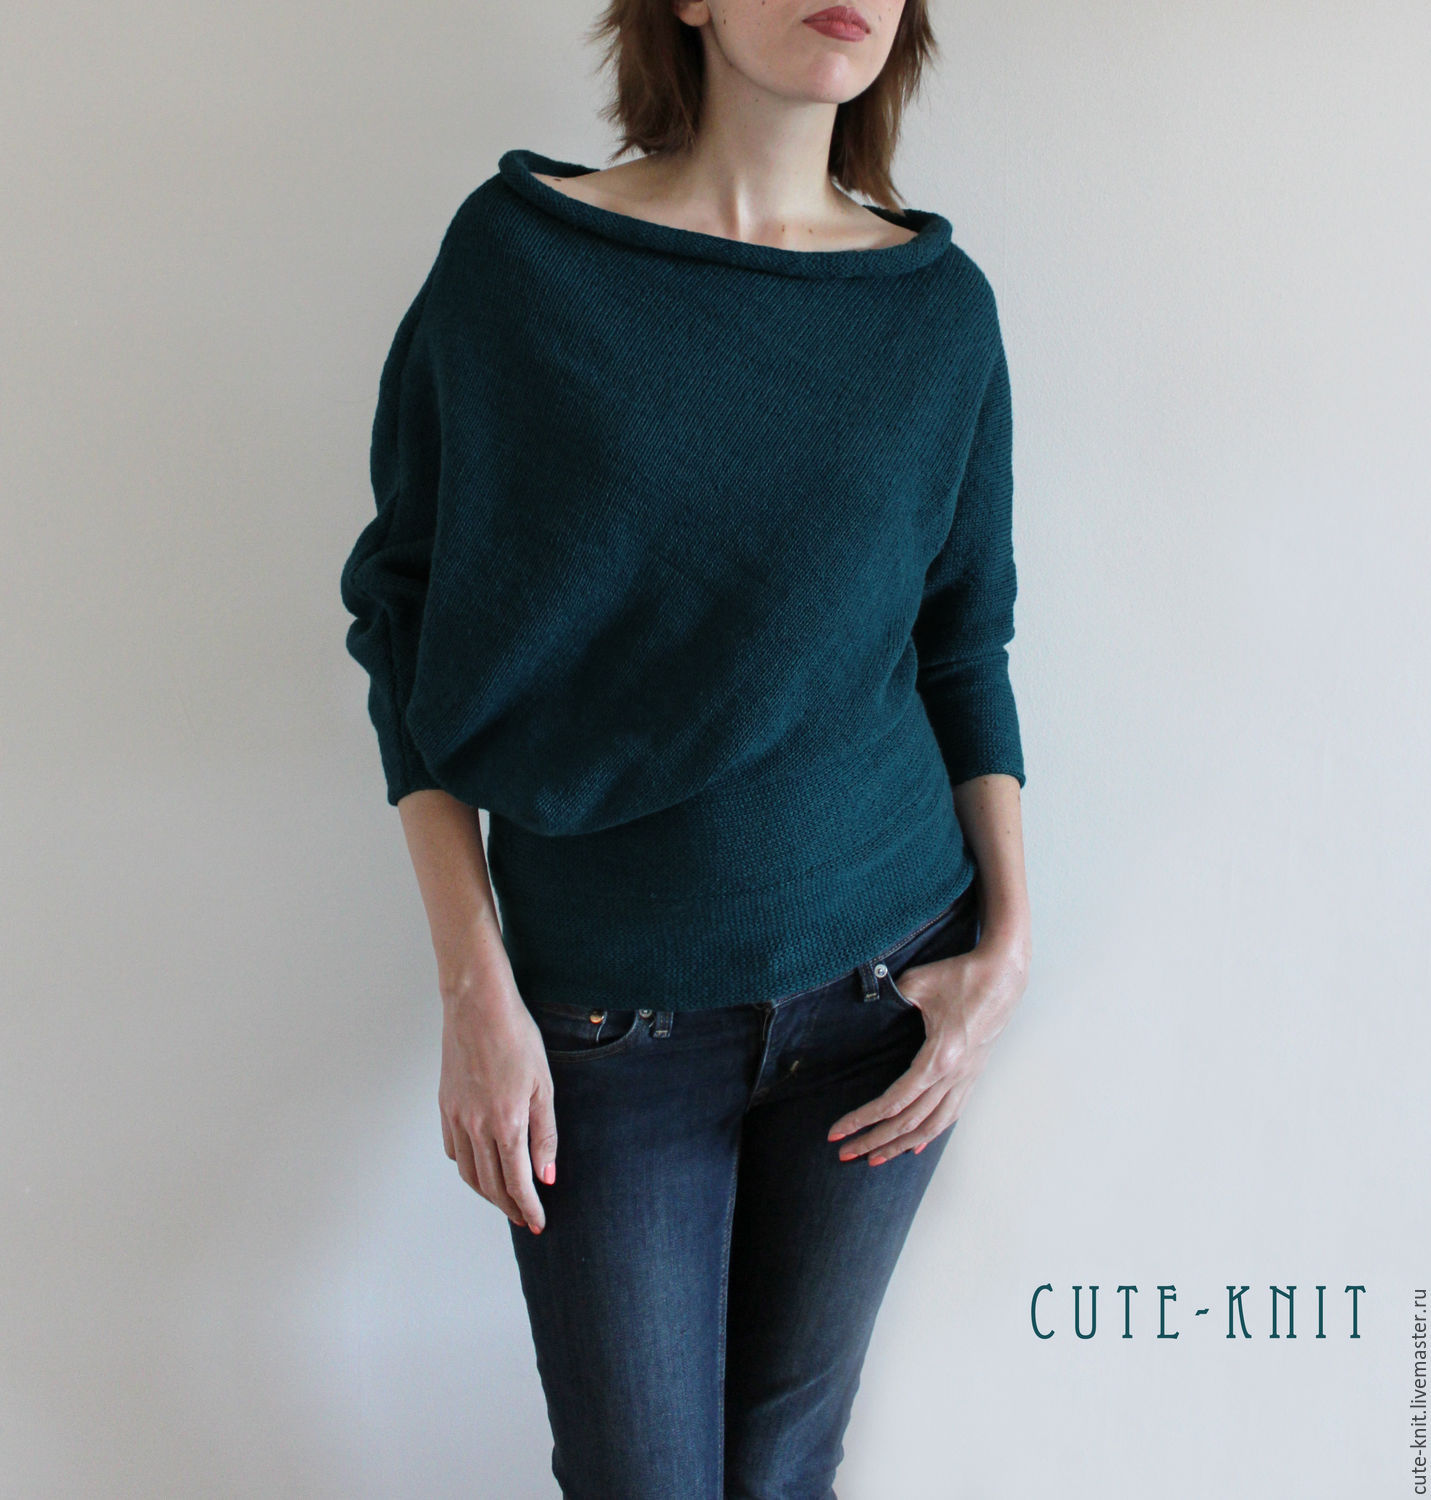 To better visualize the model, click on the photo and zoom in CUTE-KNIT NAT Onipchenko Fair Masters to Buy knitted asymmetrical sweater sea green